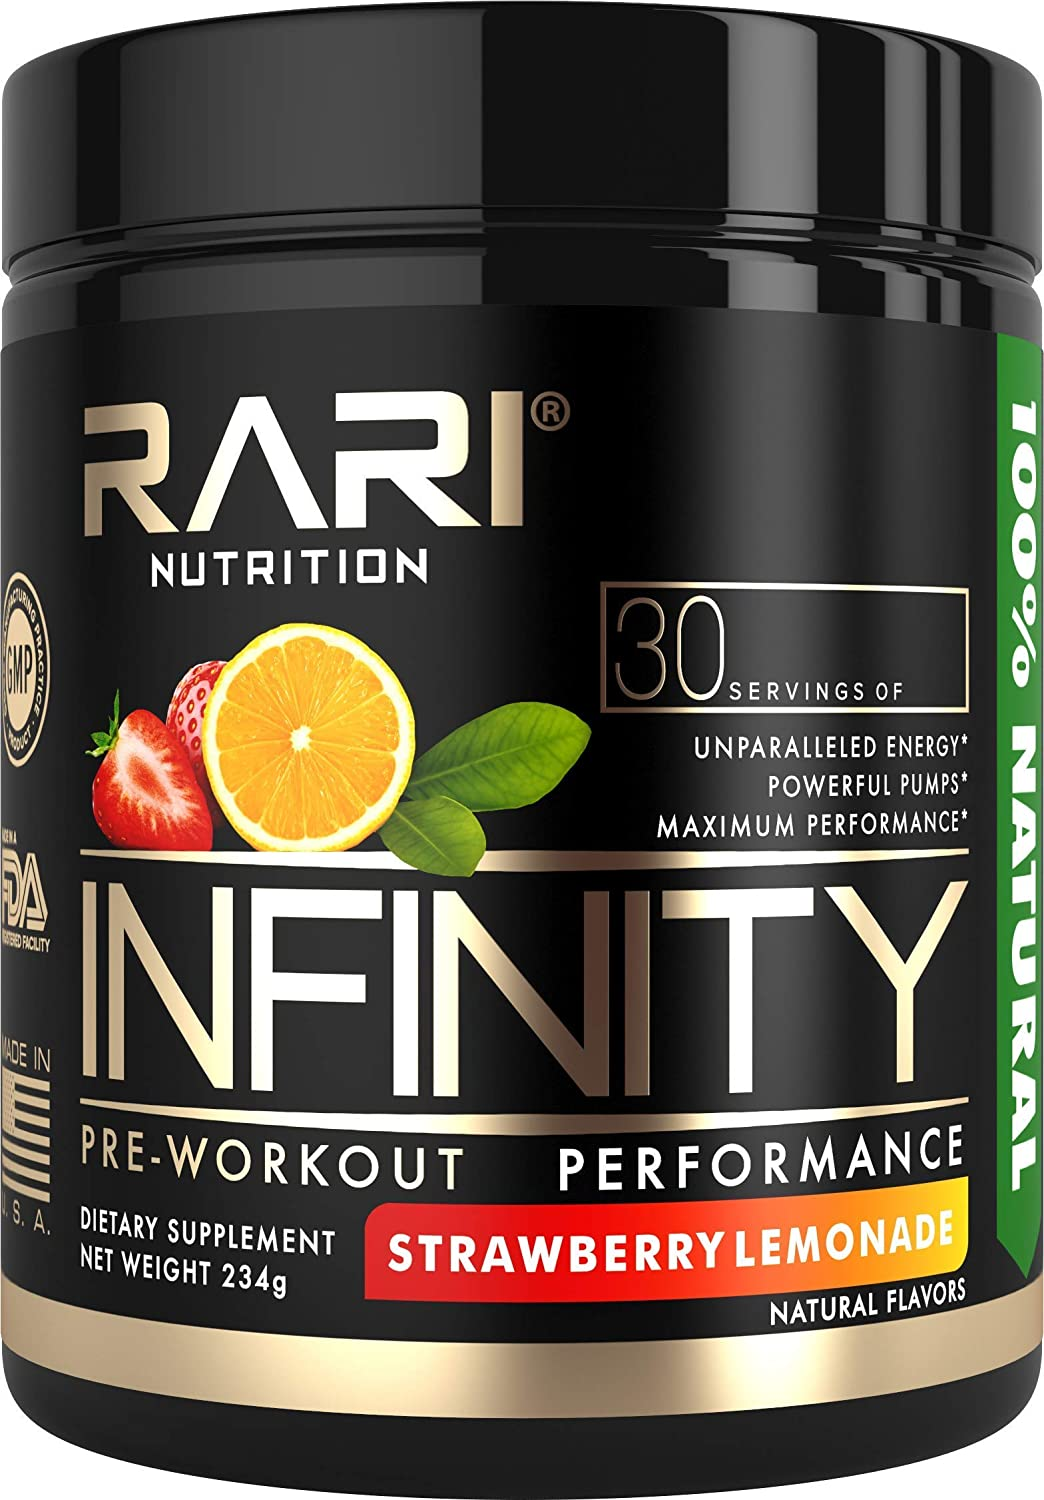 RARI Nutrition – INFINITY Preworkout – 100 Natural Pre Workout Powder – Keto and Vegan Friendly – Energy, Focus, and Performance – Men and Women – No Creatine – 30 Servings Strawberry Lemonade